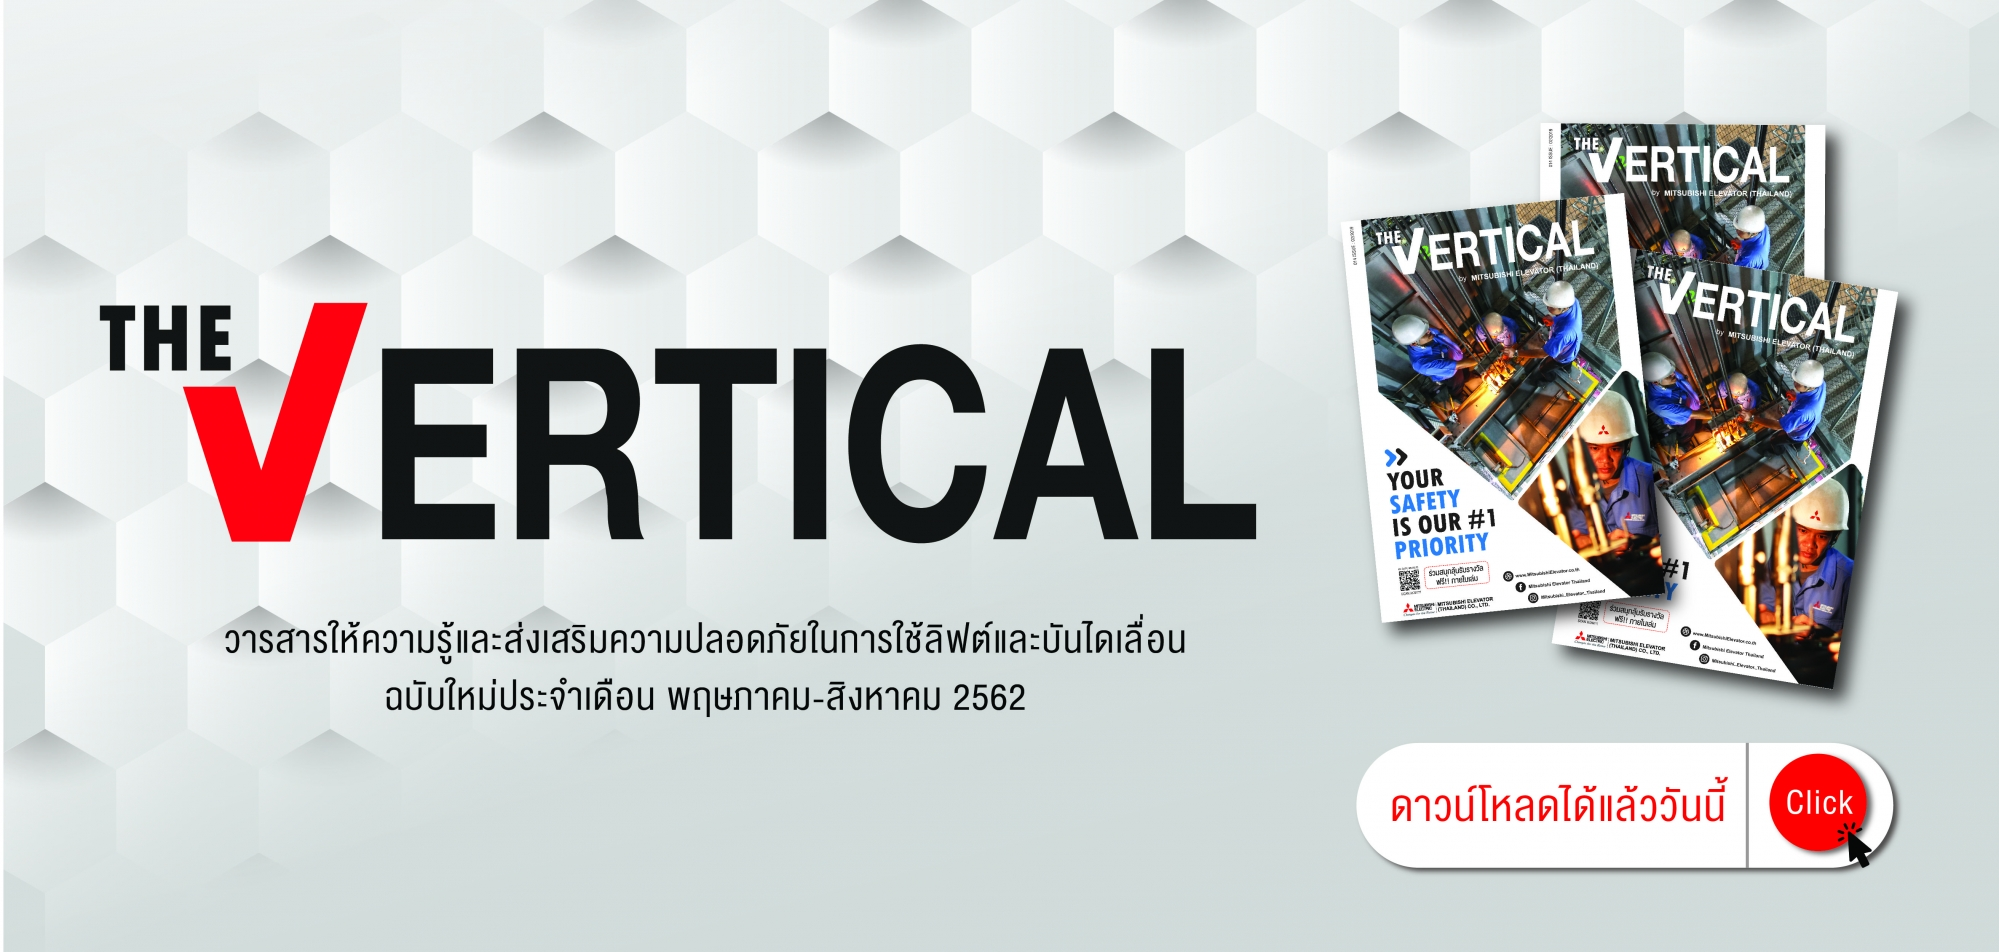 The Vertical 02-2019